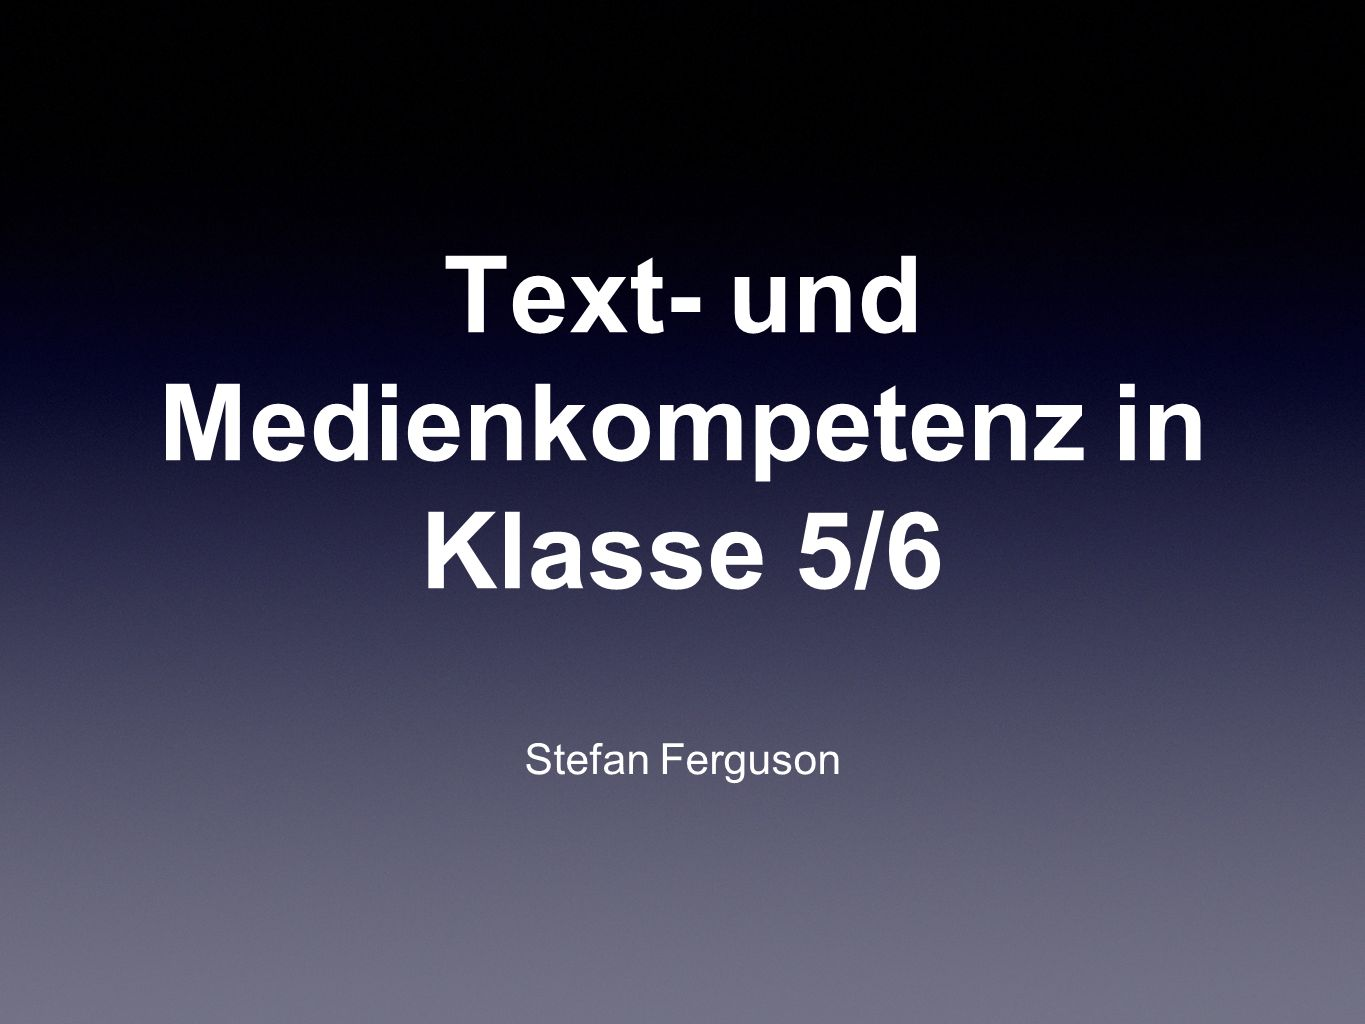 Text- und Medienkompetenz in Klasse 5/6